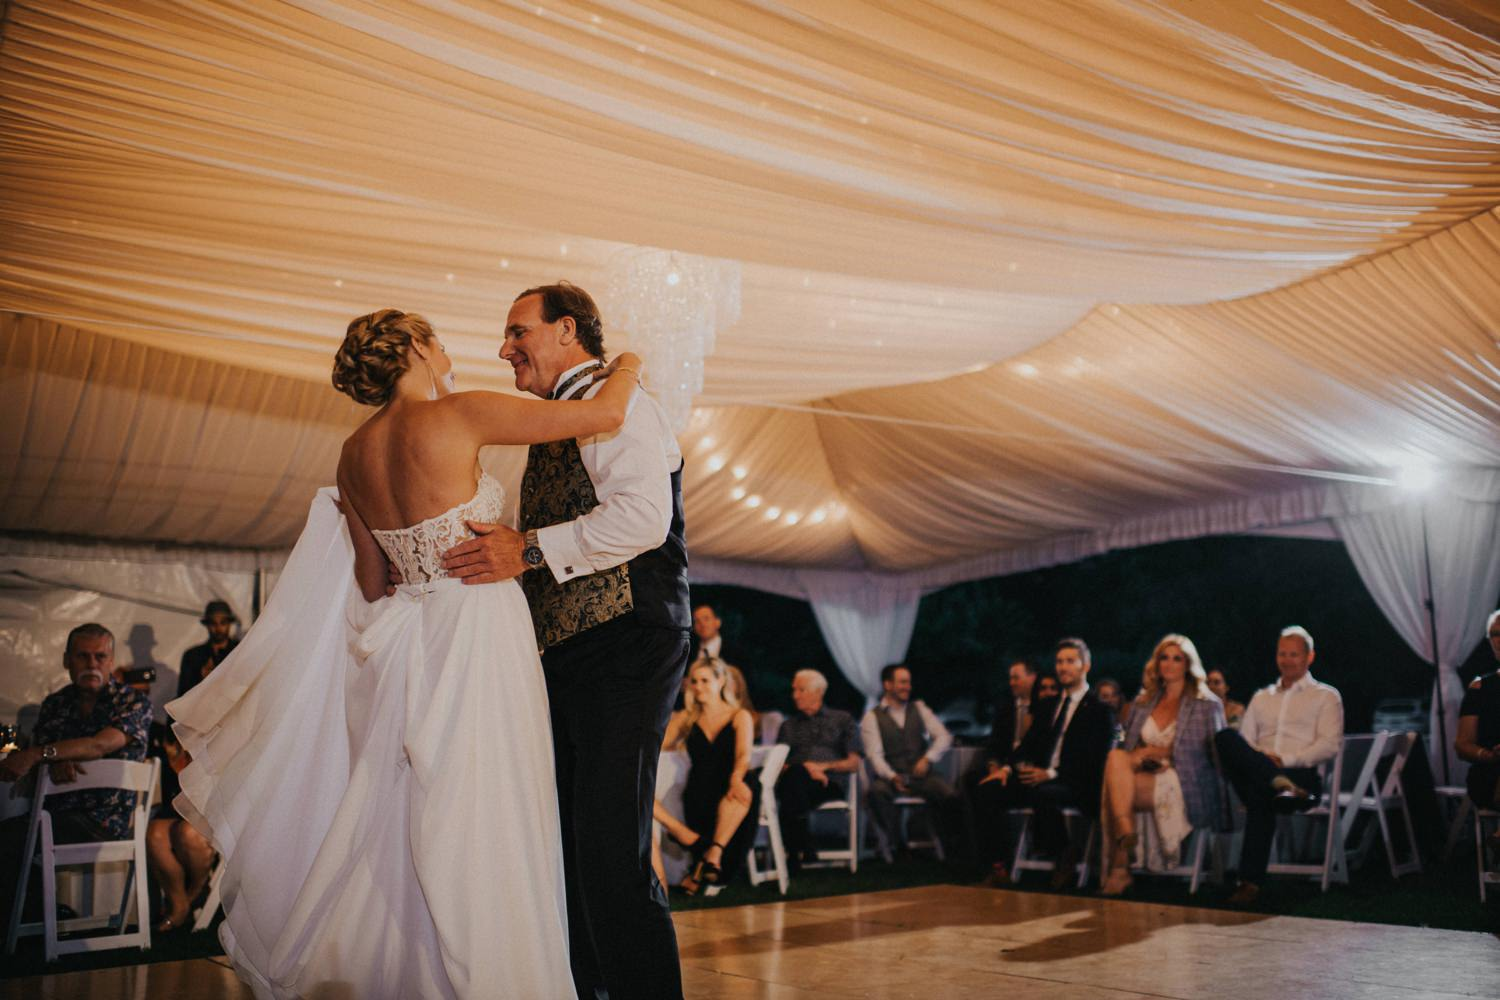 Dance Photography at The Harvest Golf Club